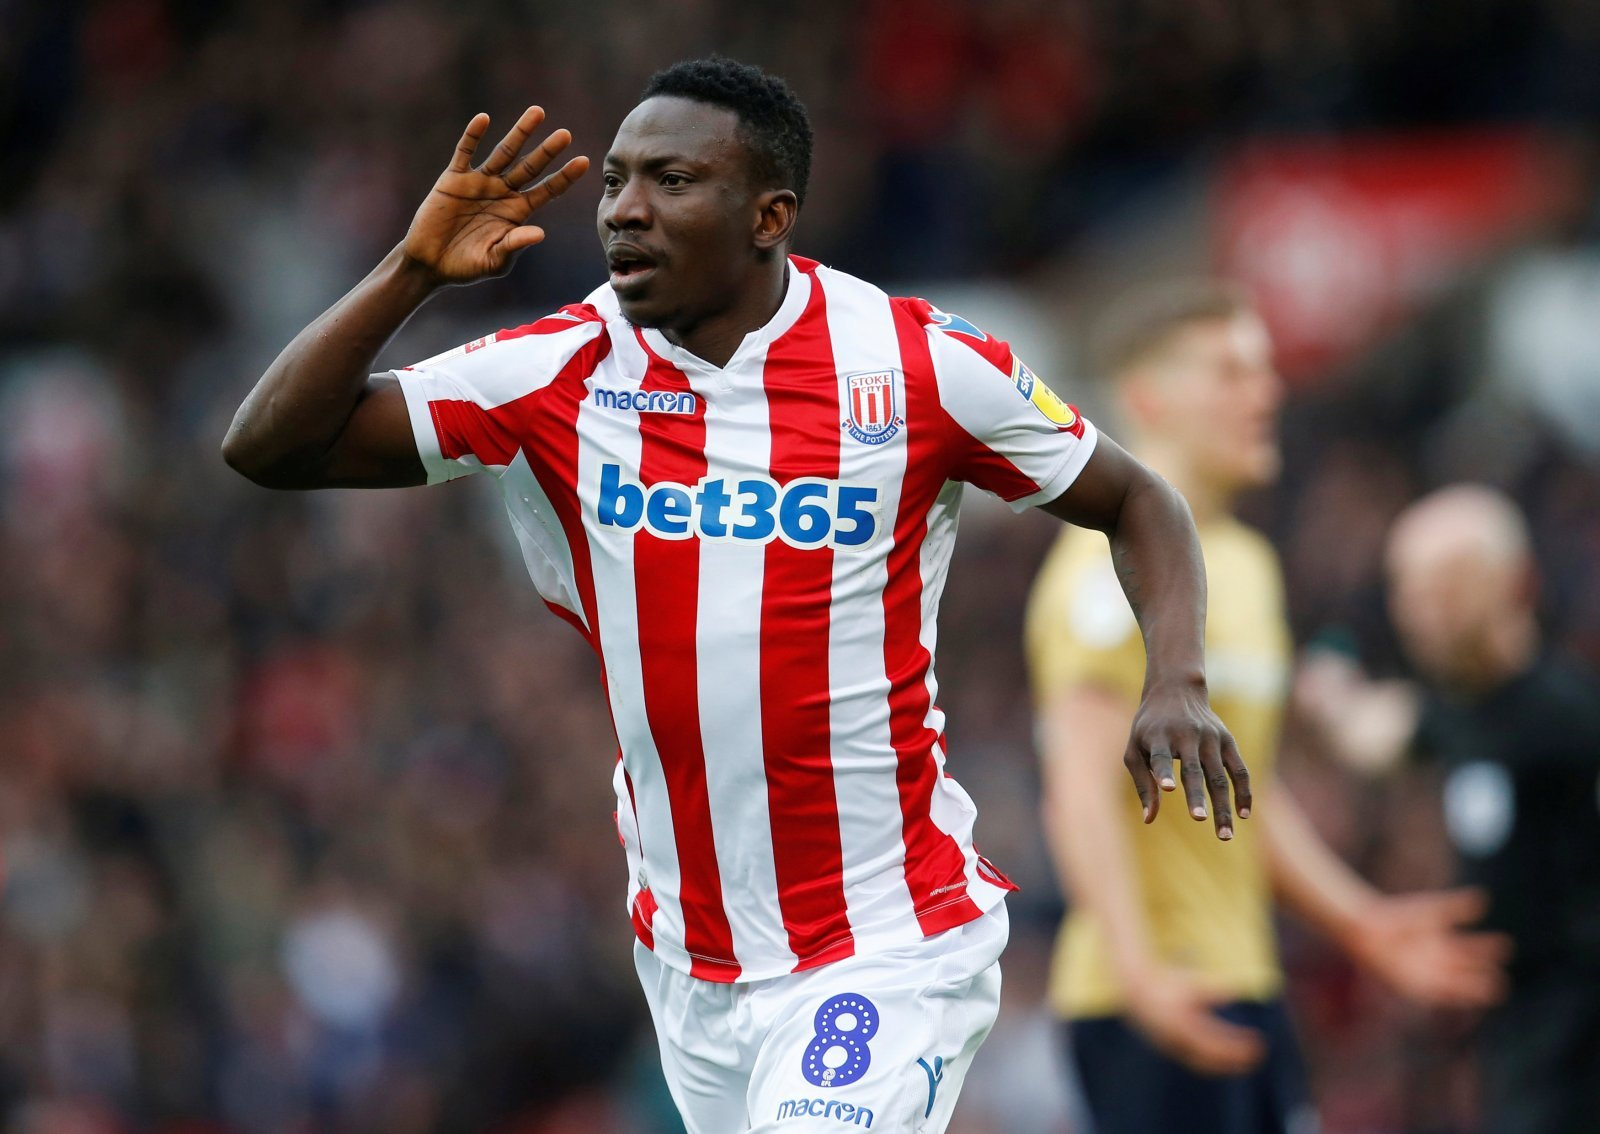 'WHAT AN ABSOLUTE DISGRACE' – MANY STOKE CITY FANS LEFT ANGERED BY LATEST O'NEILL STATEMENT